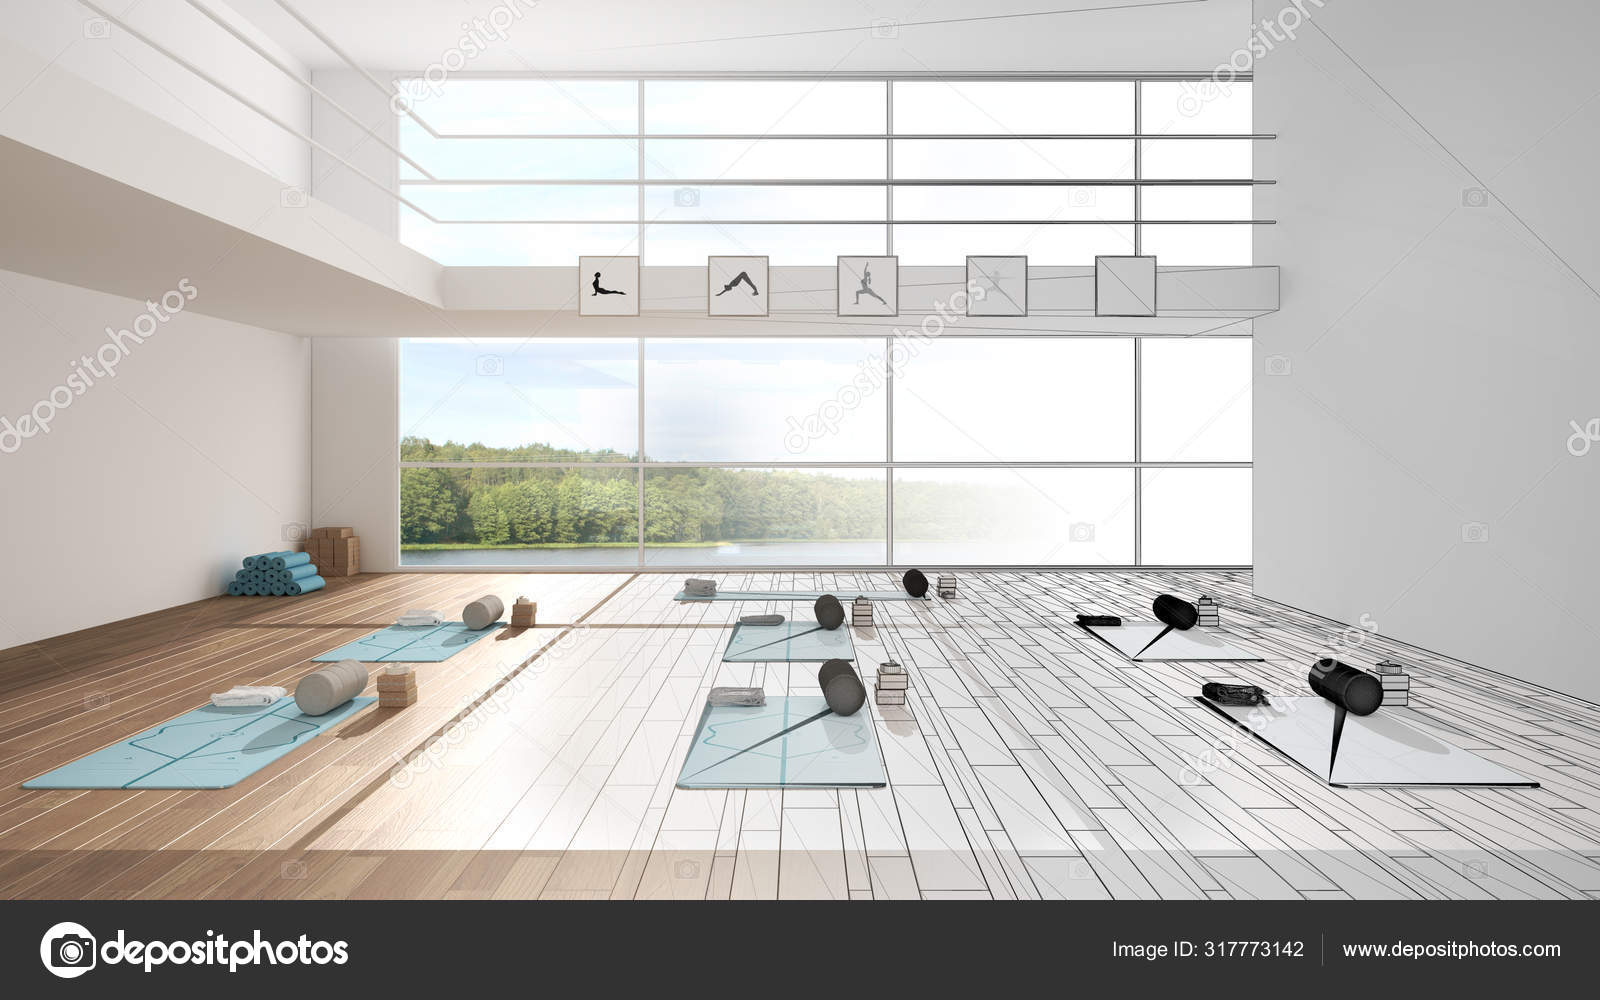 Architect Interior Designer Concept Unfinished Project That Becomes Real Empty Yoga Studio Design Spatial Organization With Mats And Accessories Panoramic Window Concept Idea Stock Photo C Archiviz 317773142